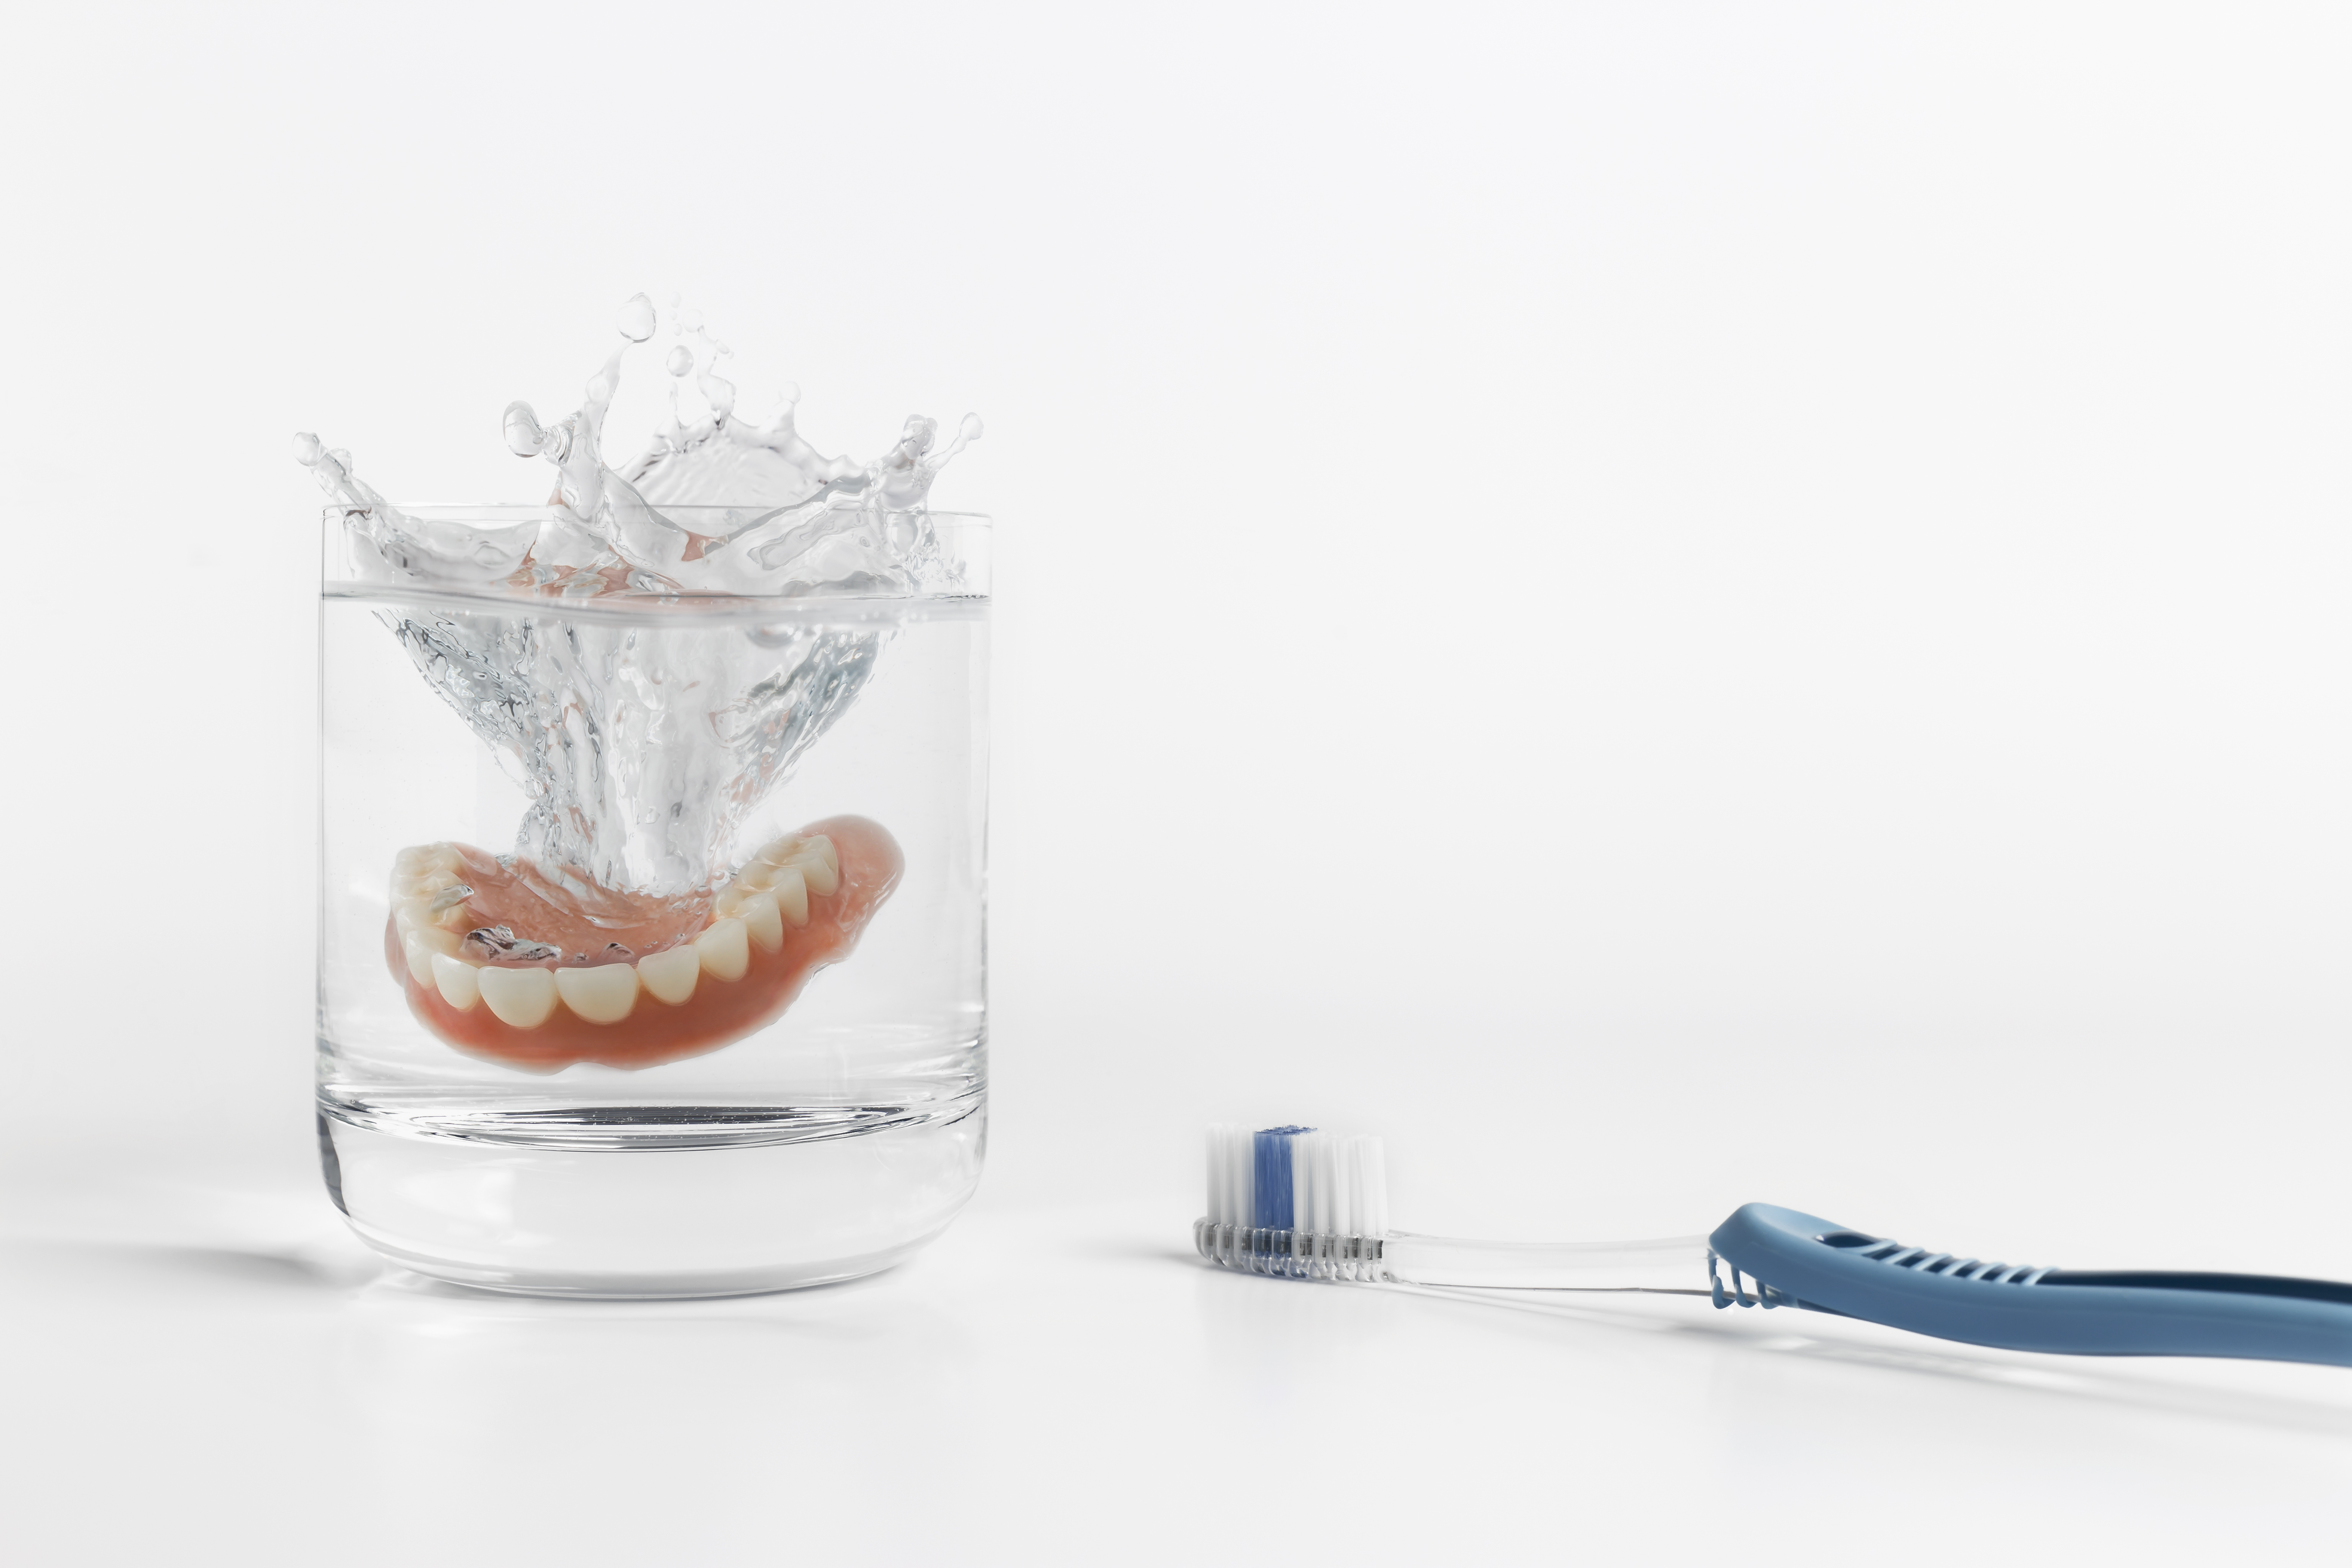 Dentures in cup of water next to toothbrush